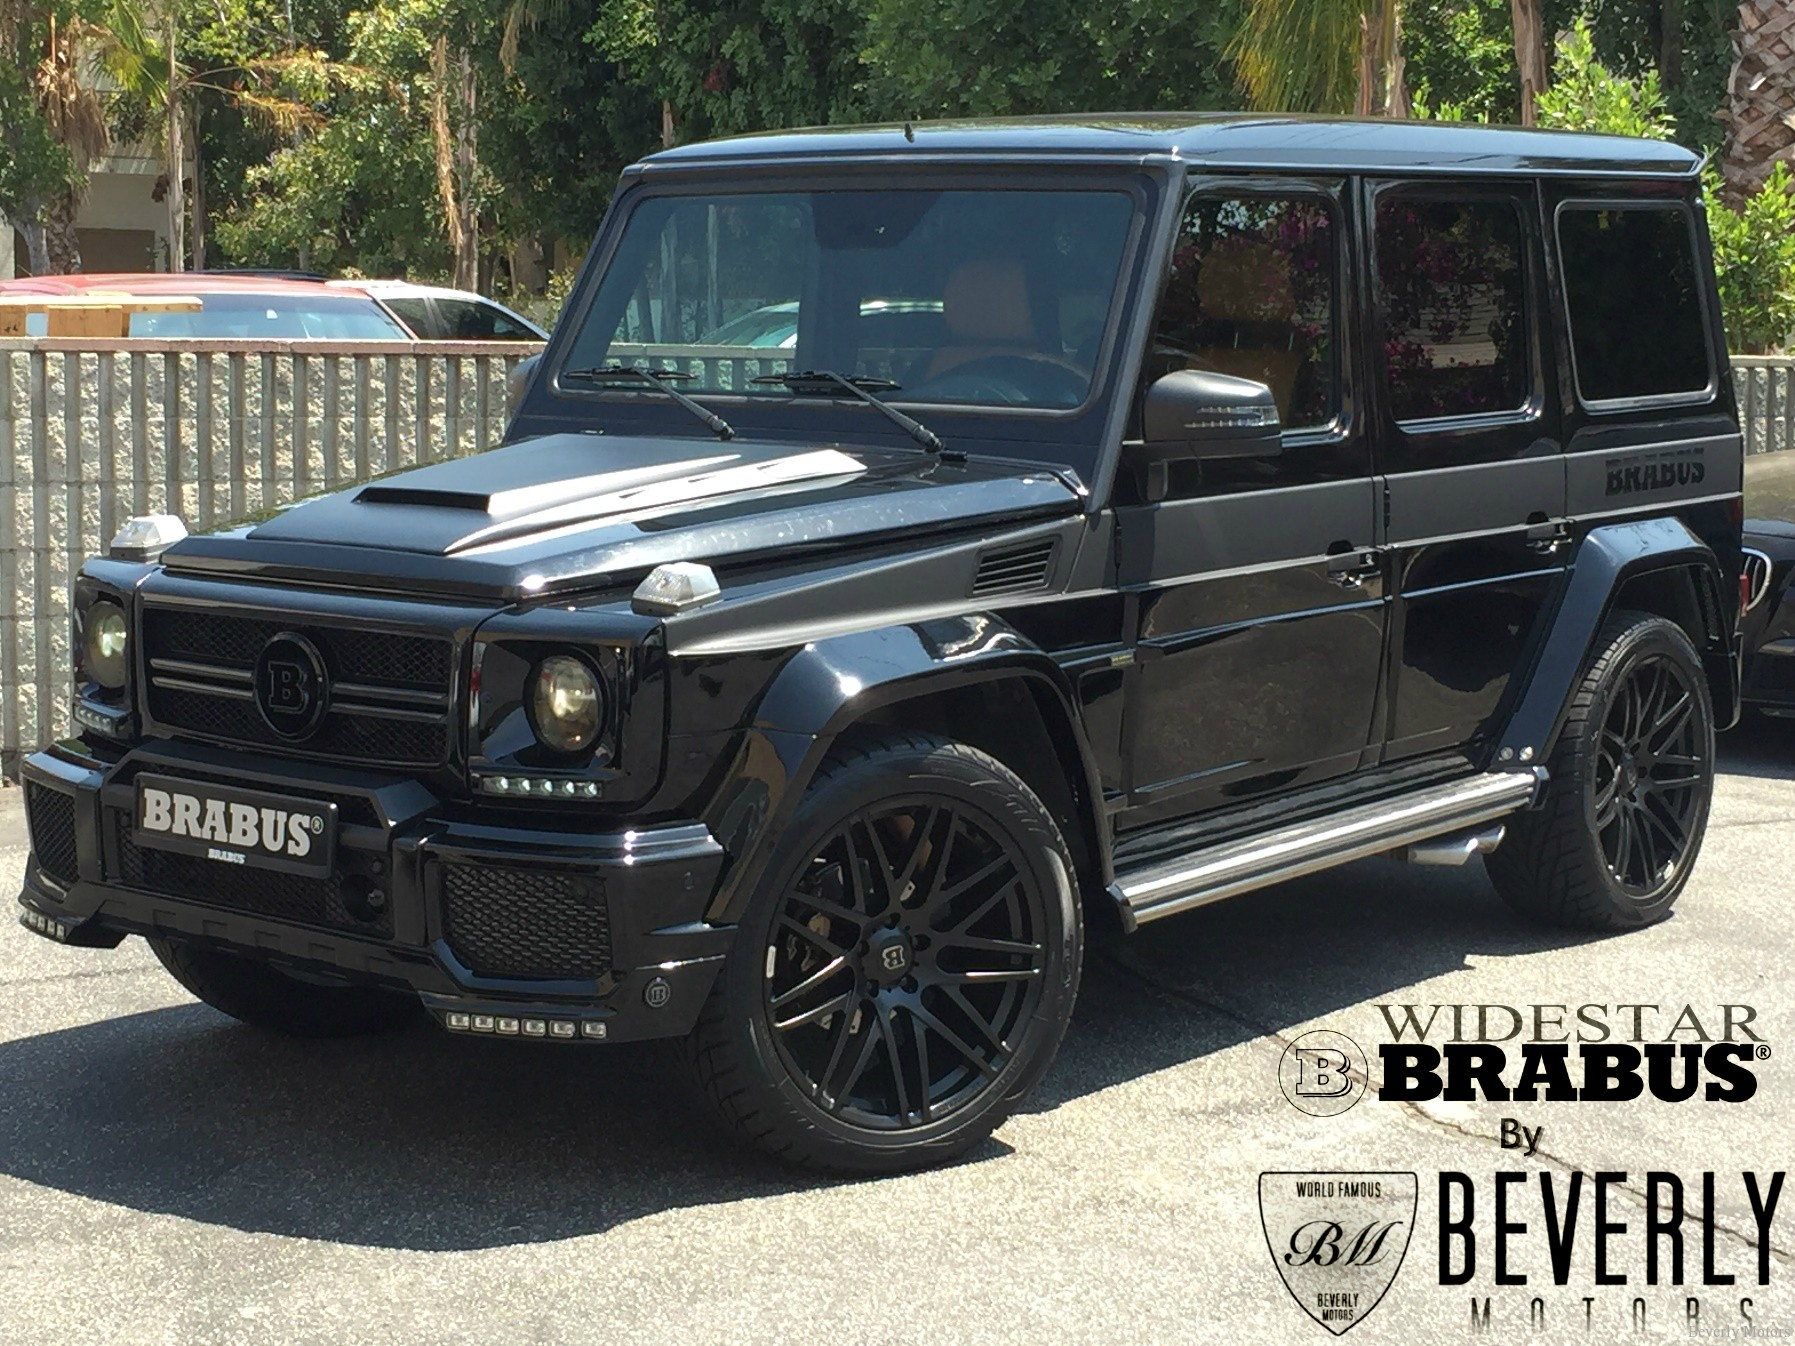 2004 mercedes benz g55 amg brabus widestar edition for Mercedes benz g class amg